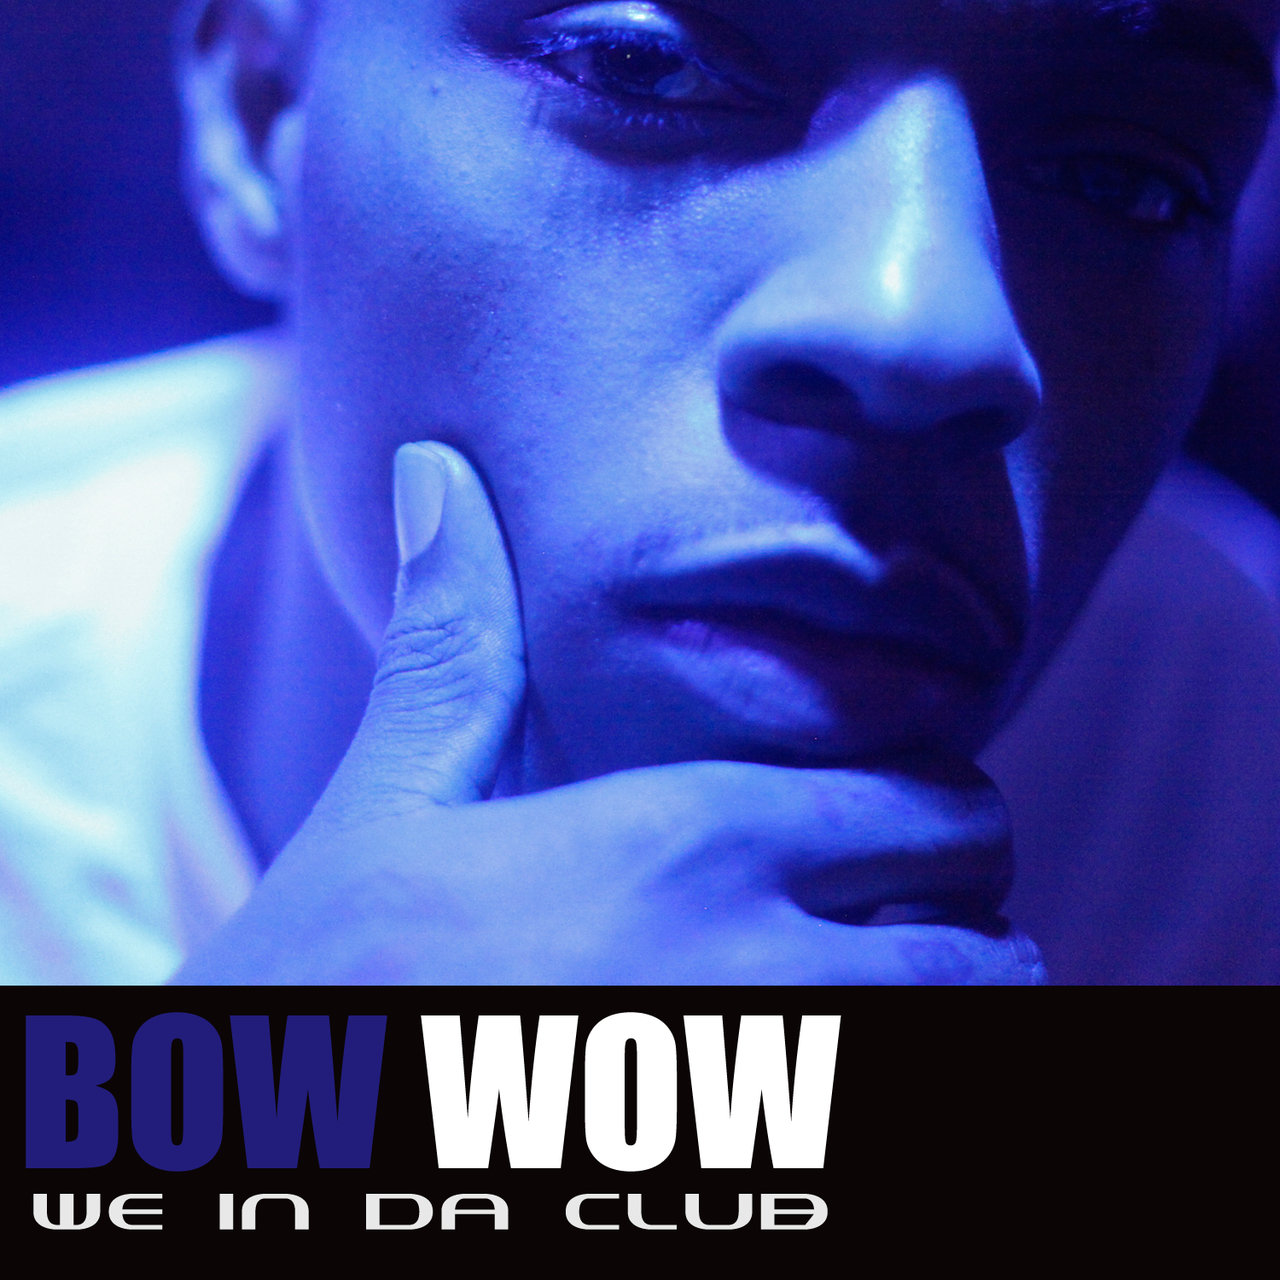 Tidal listen to bow wow on tidal bow wow we in da club edited version nvjuhfo Image collections